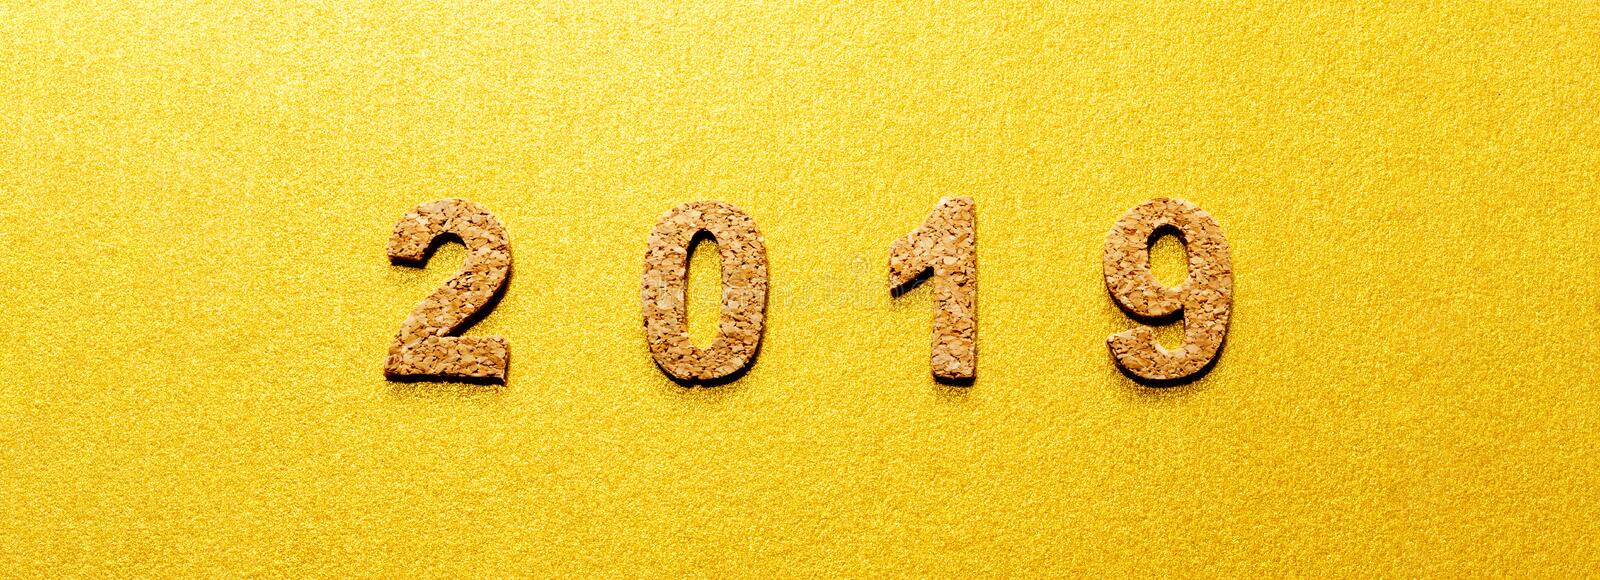 New years resolution 2019 concept. cork year number on gold color background. With copy space for your text royalty free stock photography